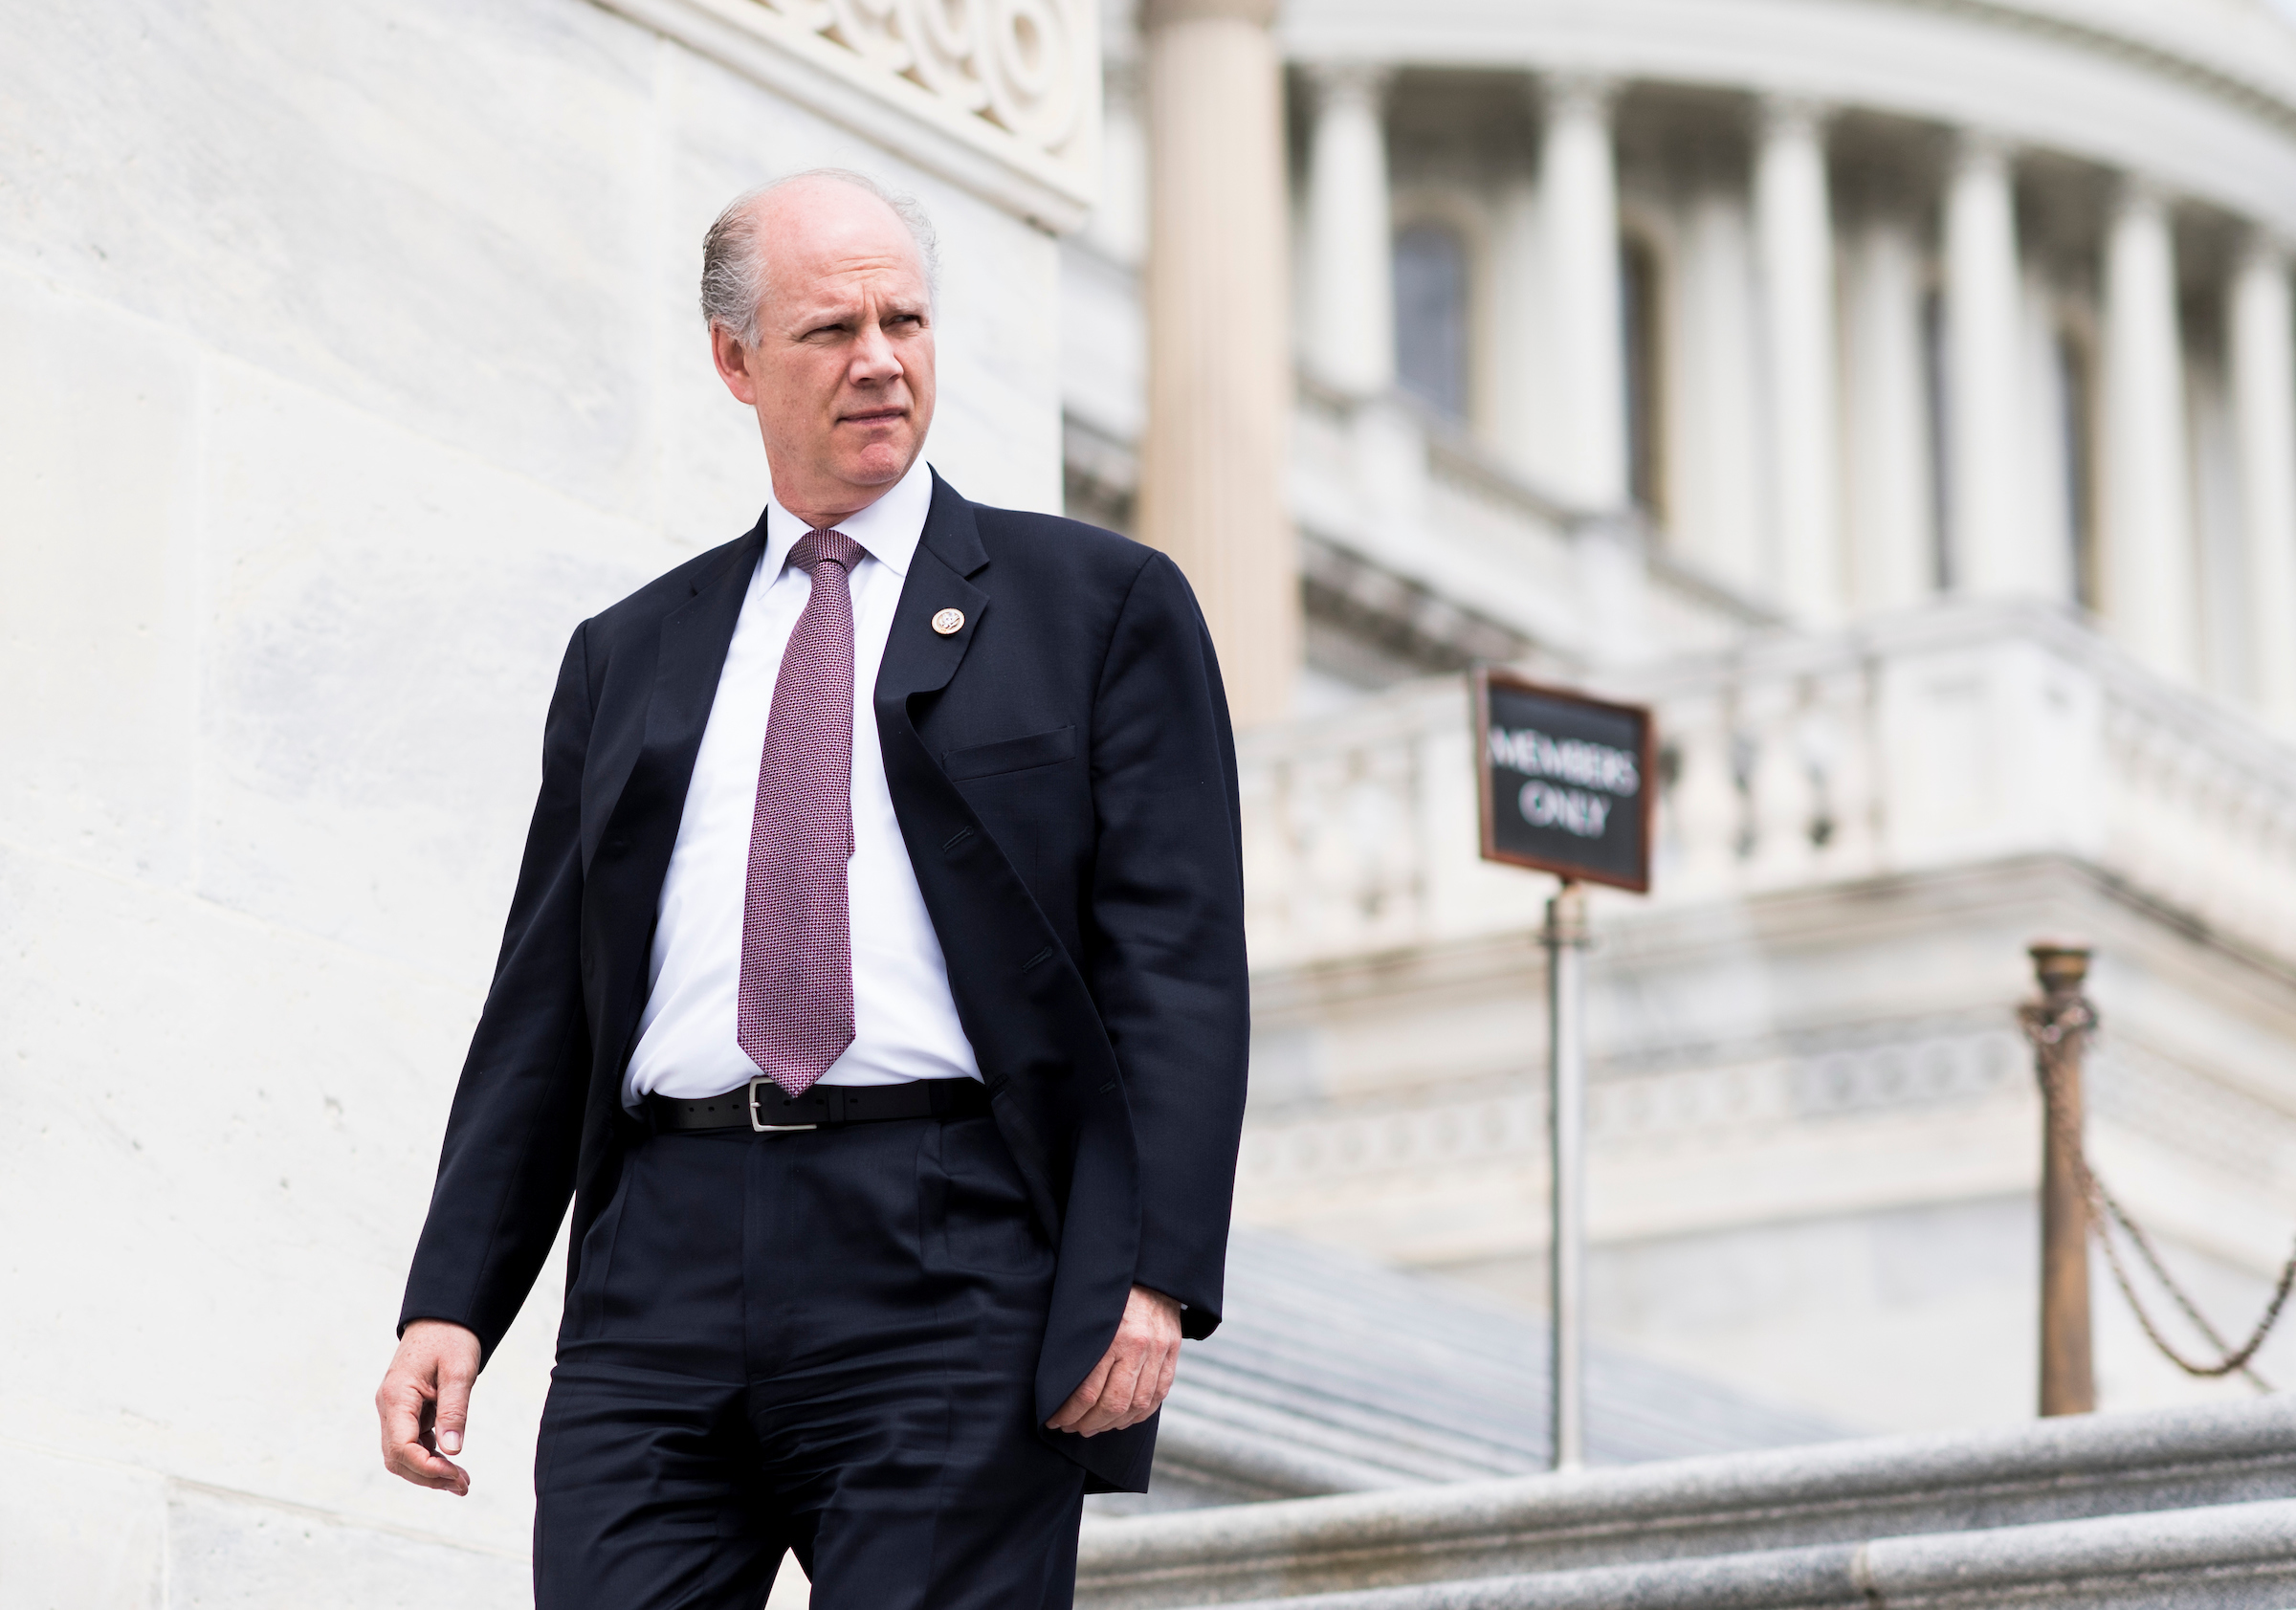 UNITED STATES - MAY 4: Rep. Dan Donovan, R-N.Y., walks down the House steps at the Capitol after a series of votes on repeal and replace of Obamacare on Thursday, May 4, 2017. (Photo By Bill Clark/CQ Roll Call)